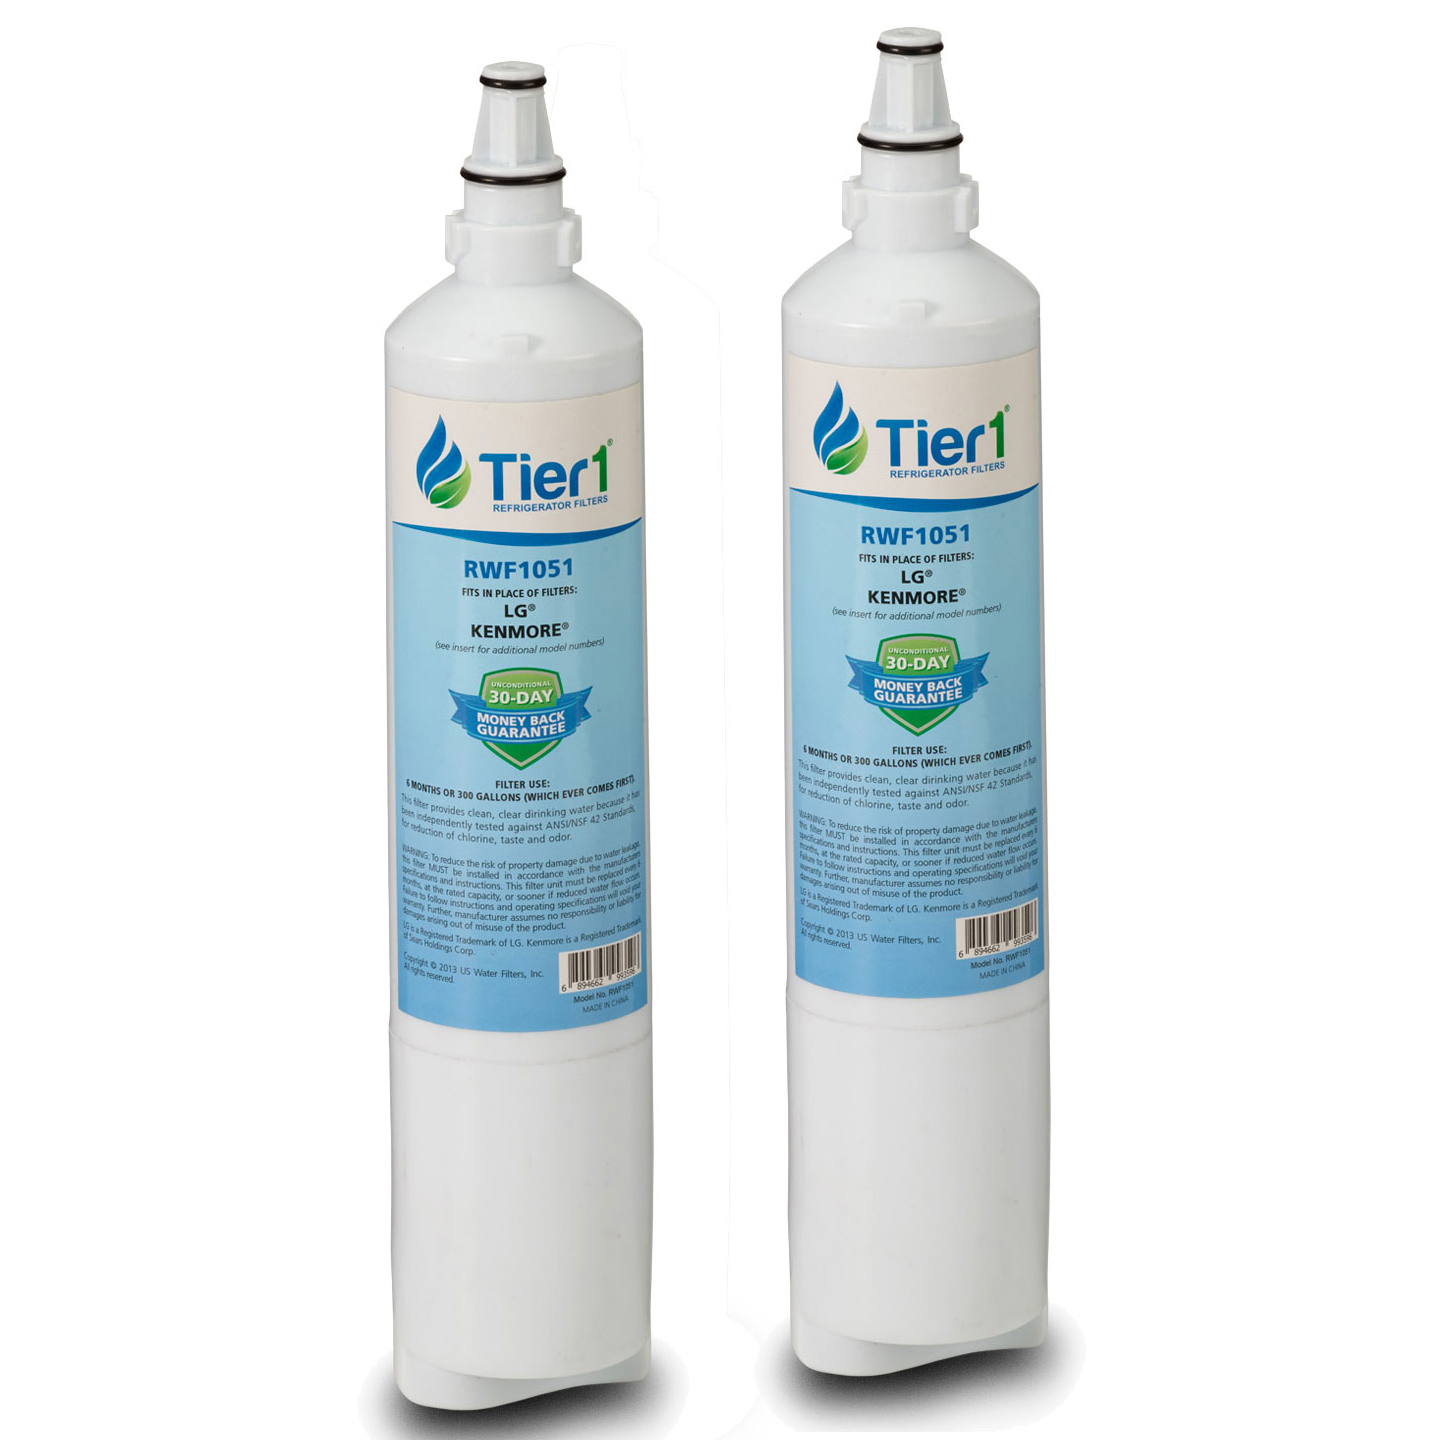 5231JA2006A / LT600P LG Comparable Refrigerator Water Filter Replacement By Tier1 (2 Pack) TIER1_RWF1051_2_PACK